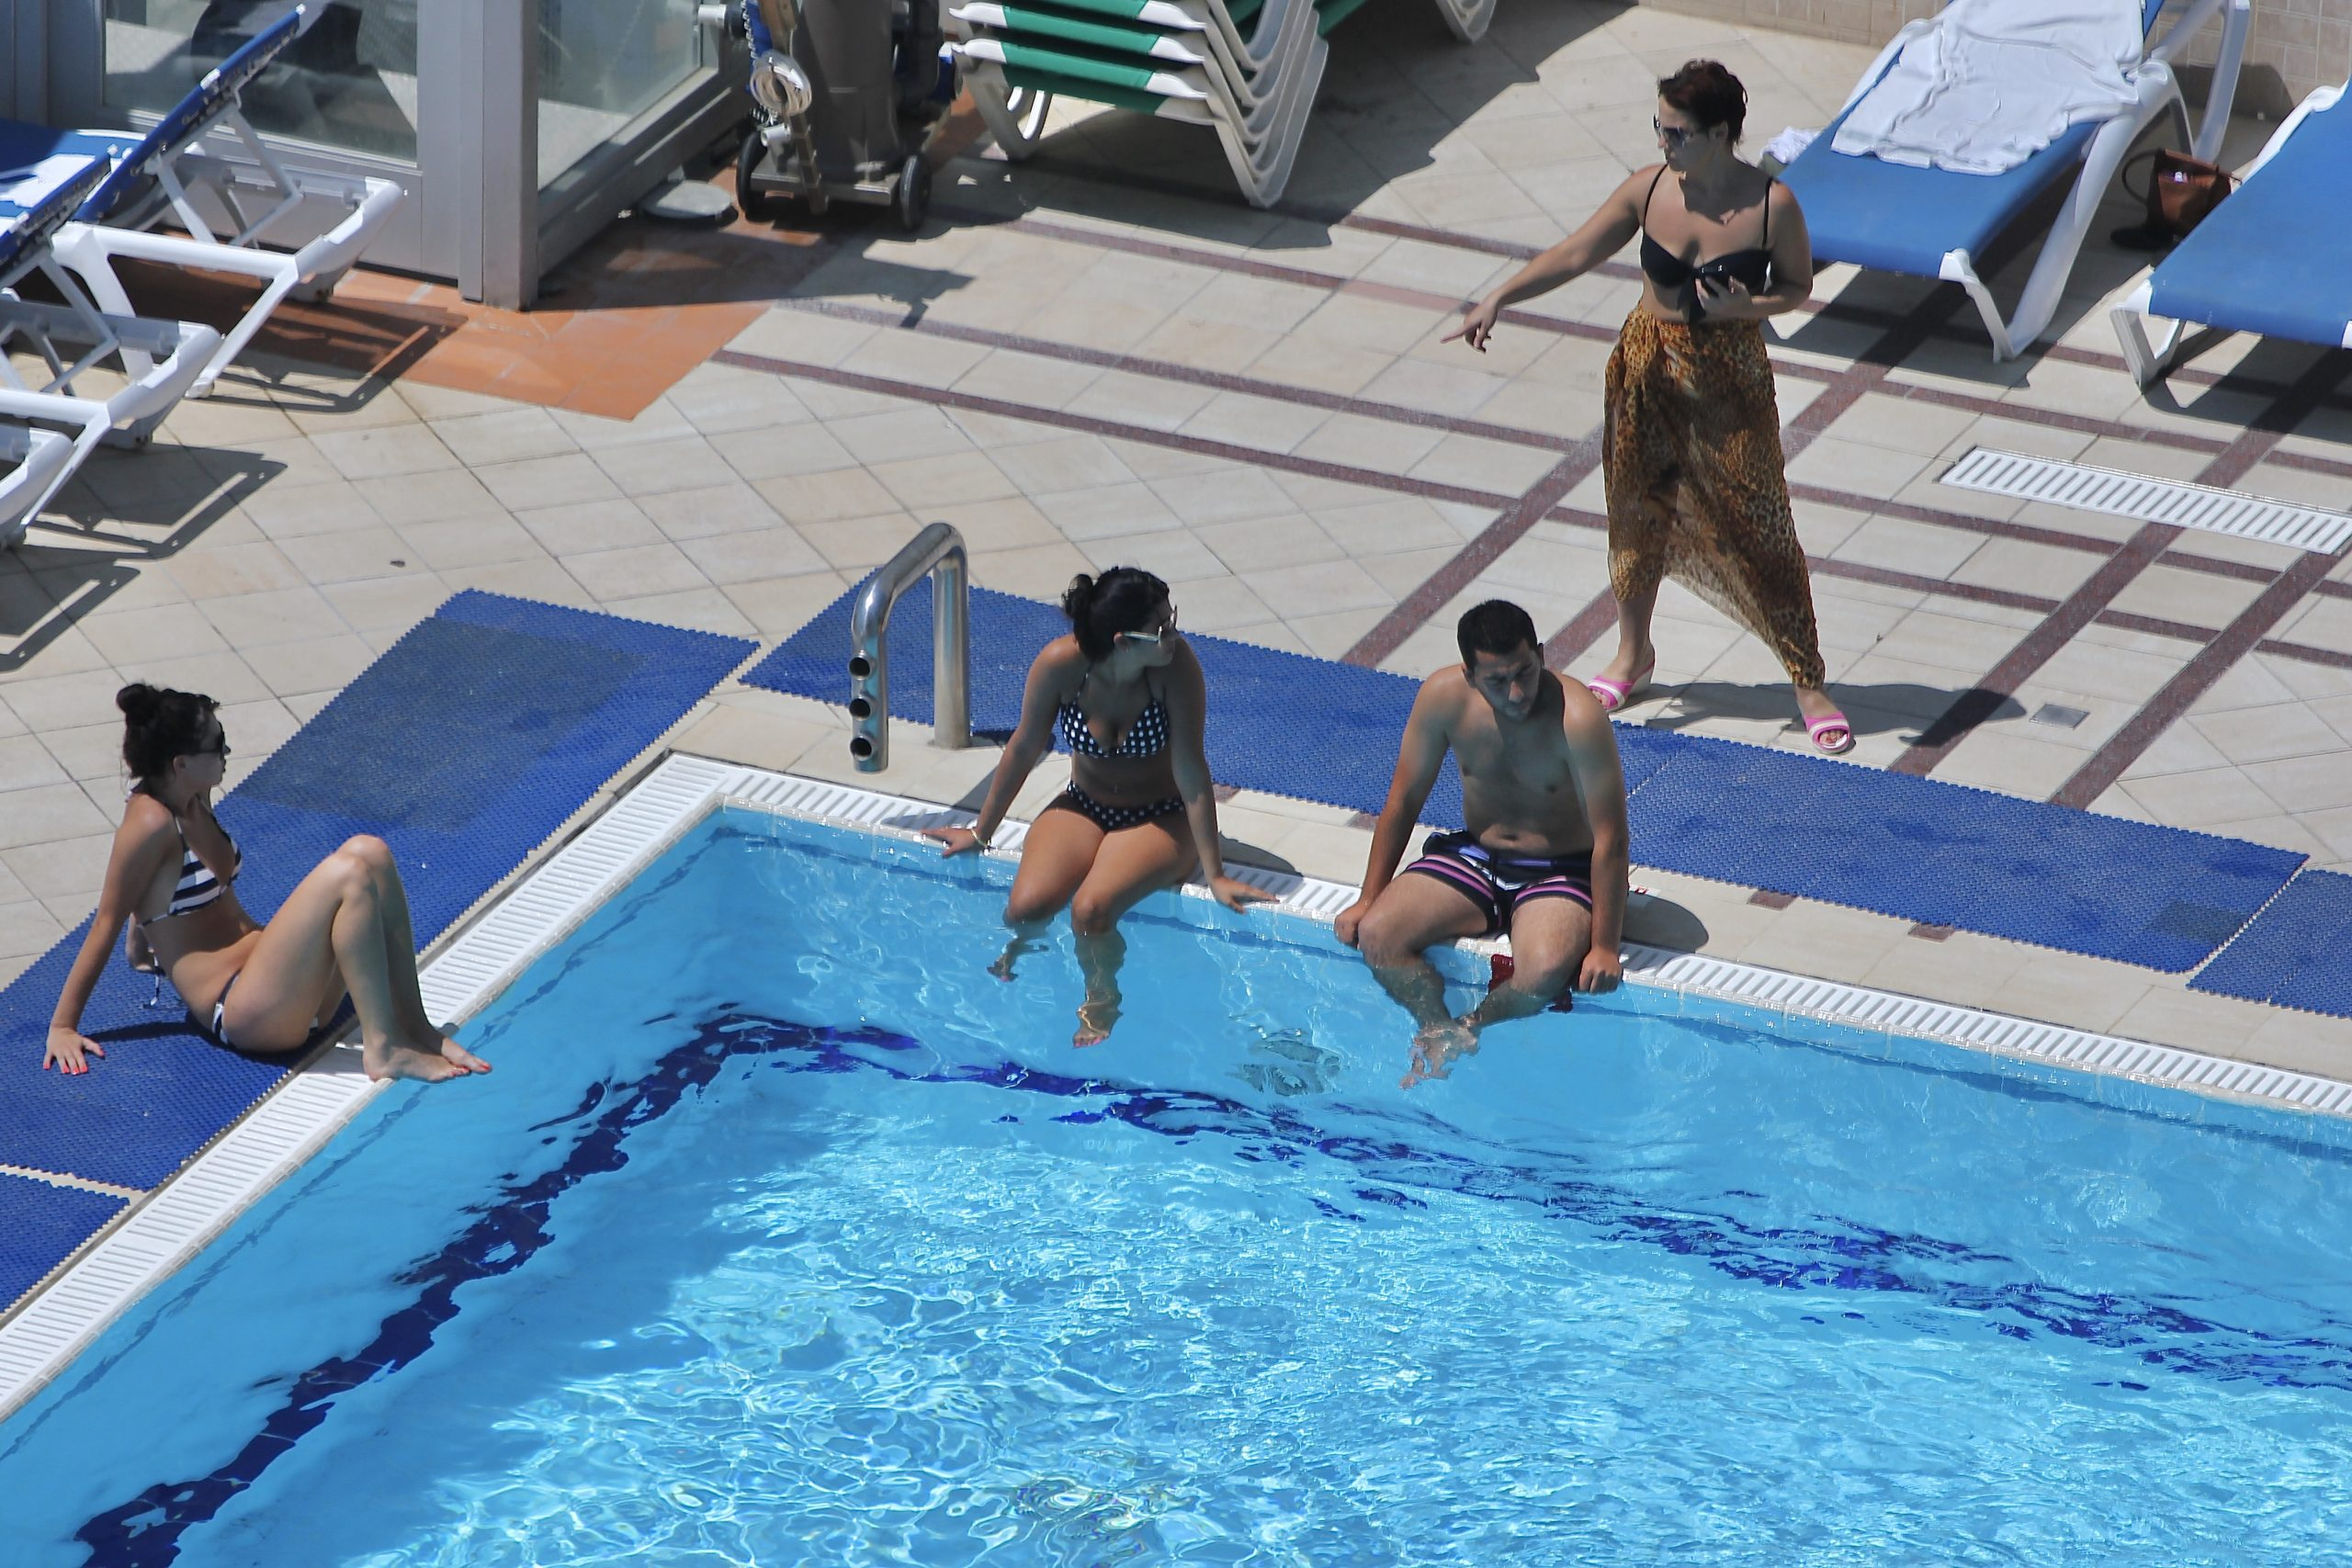 Keep social distancing in the swimming pool